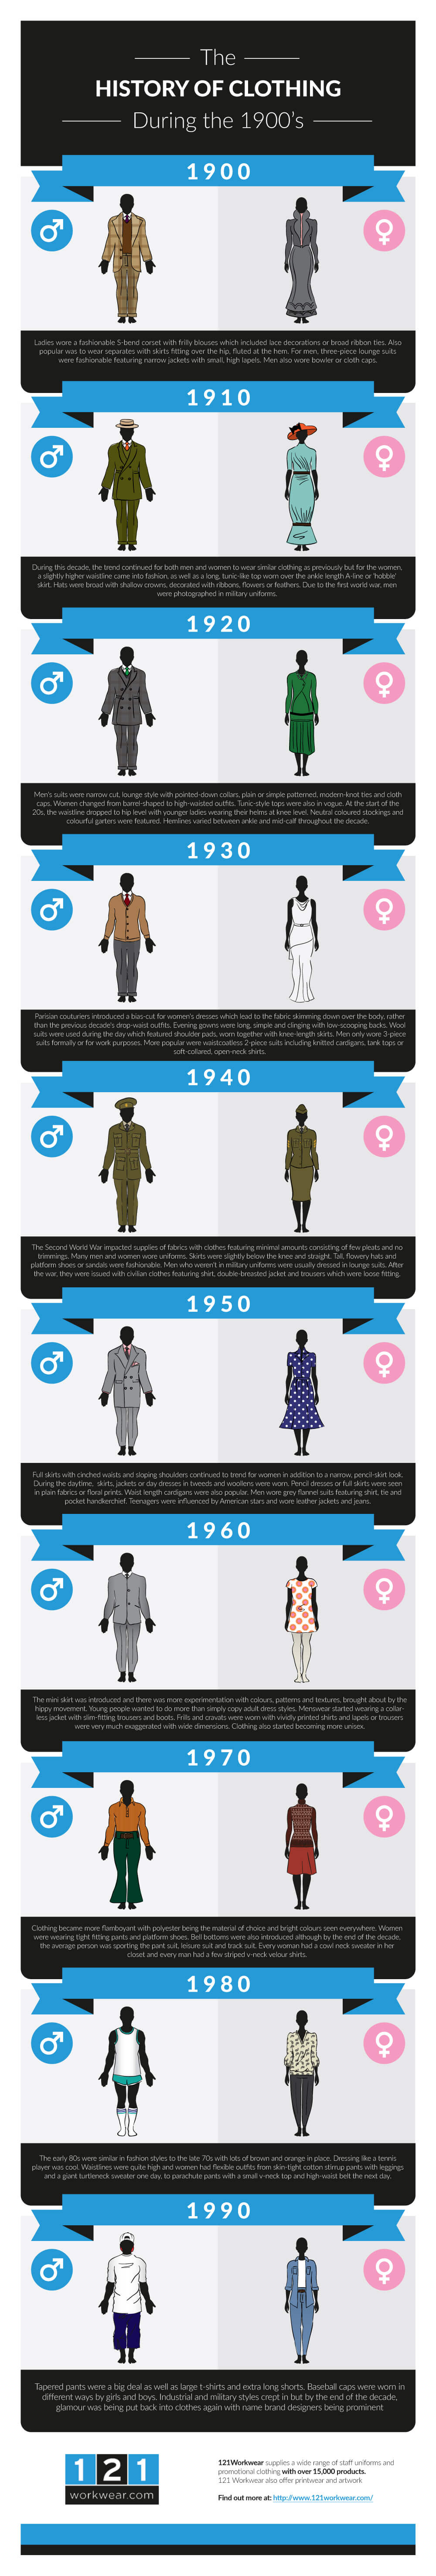 the-history-of-clothing-infographic